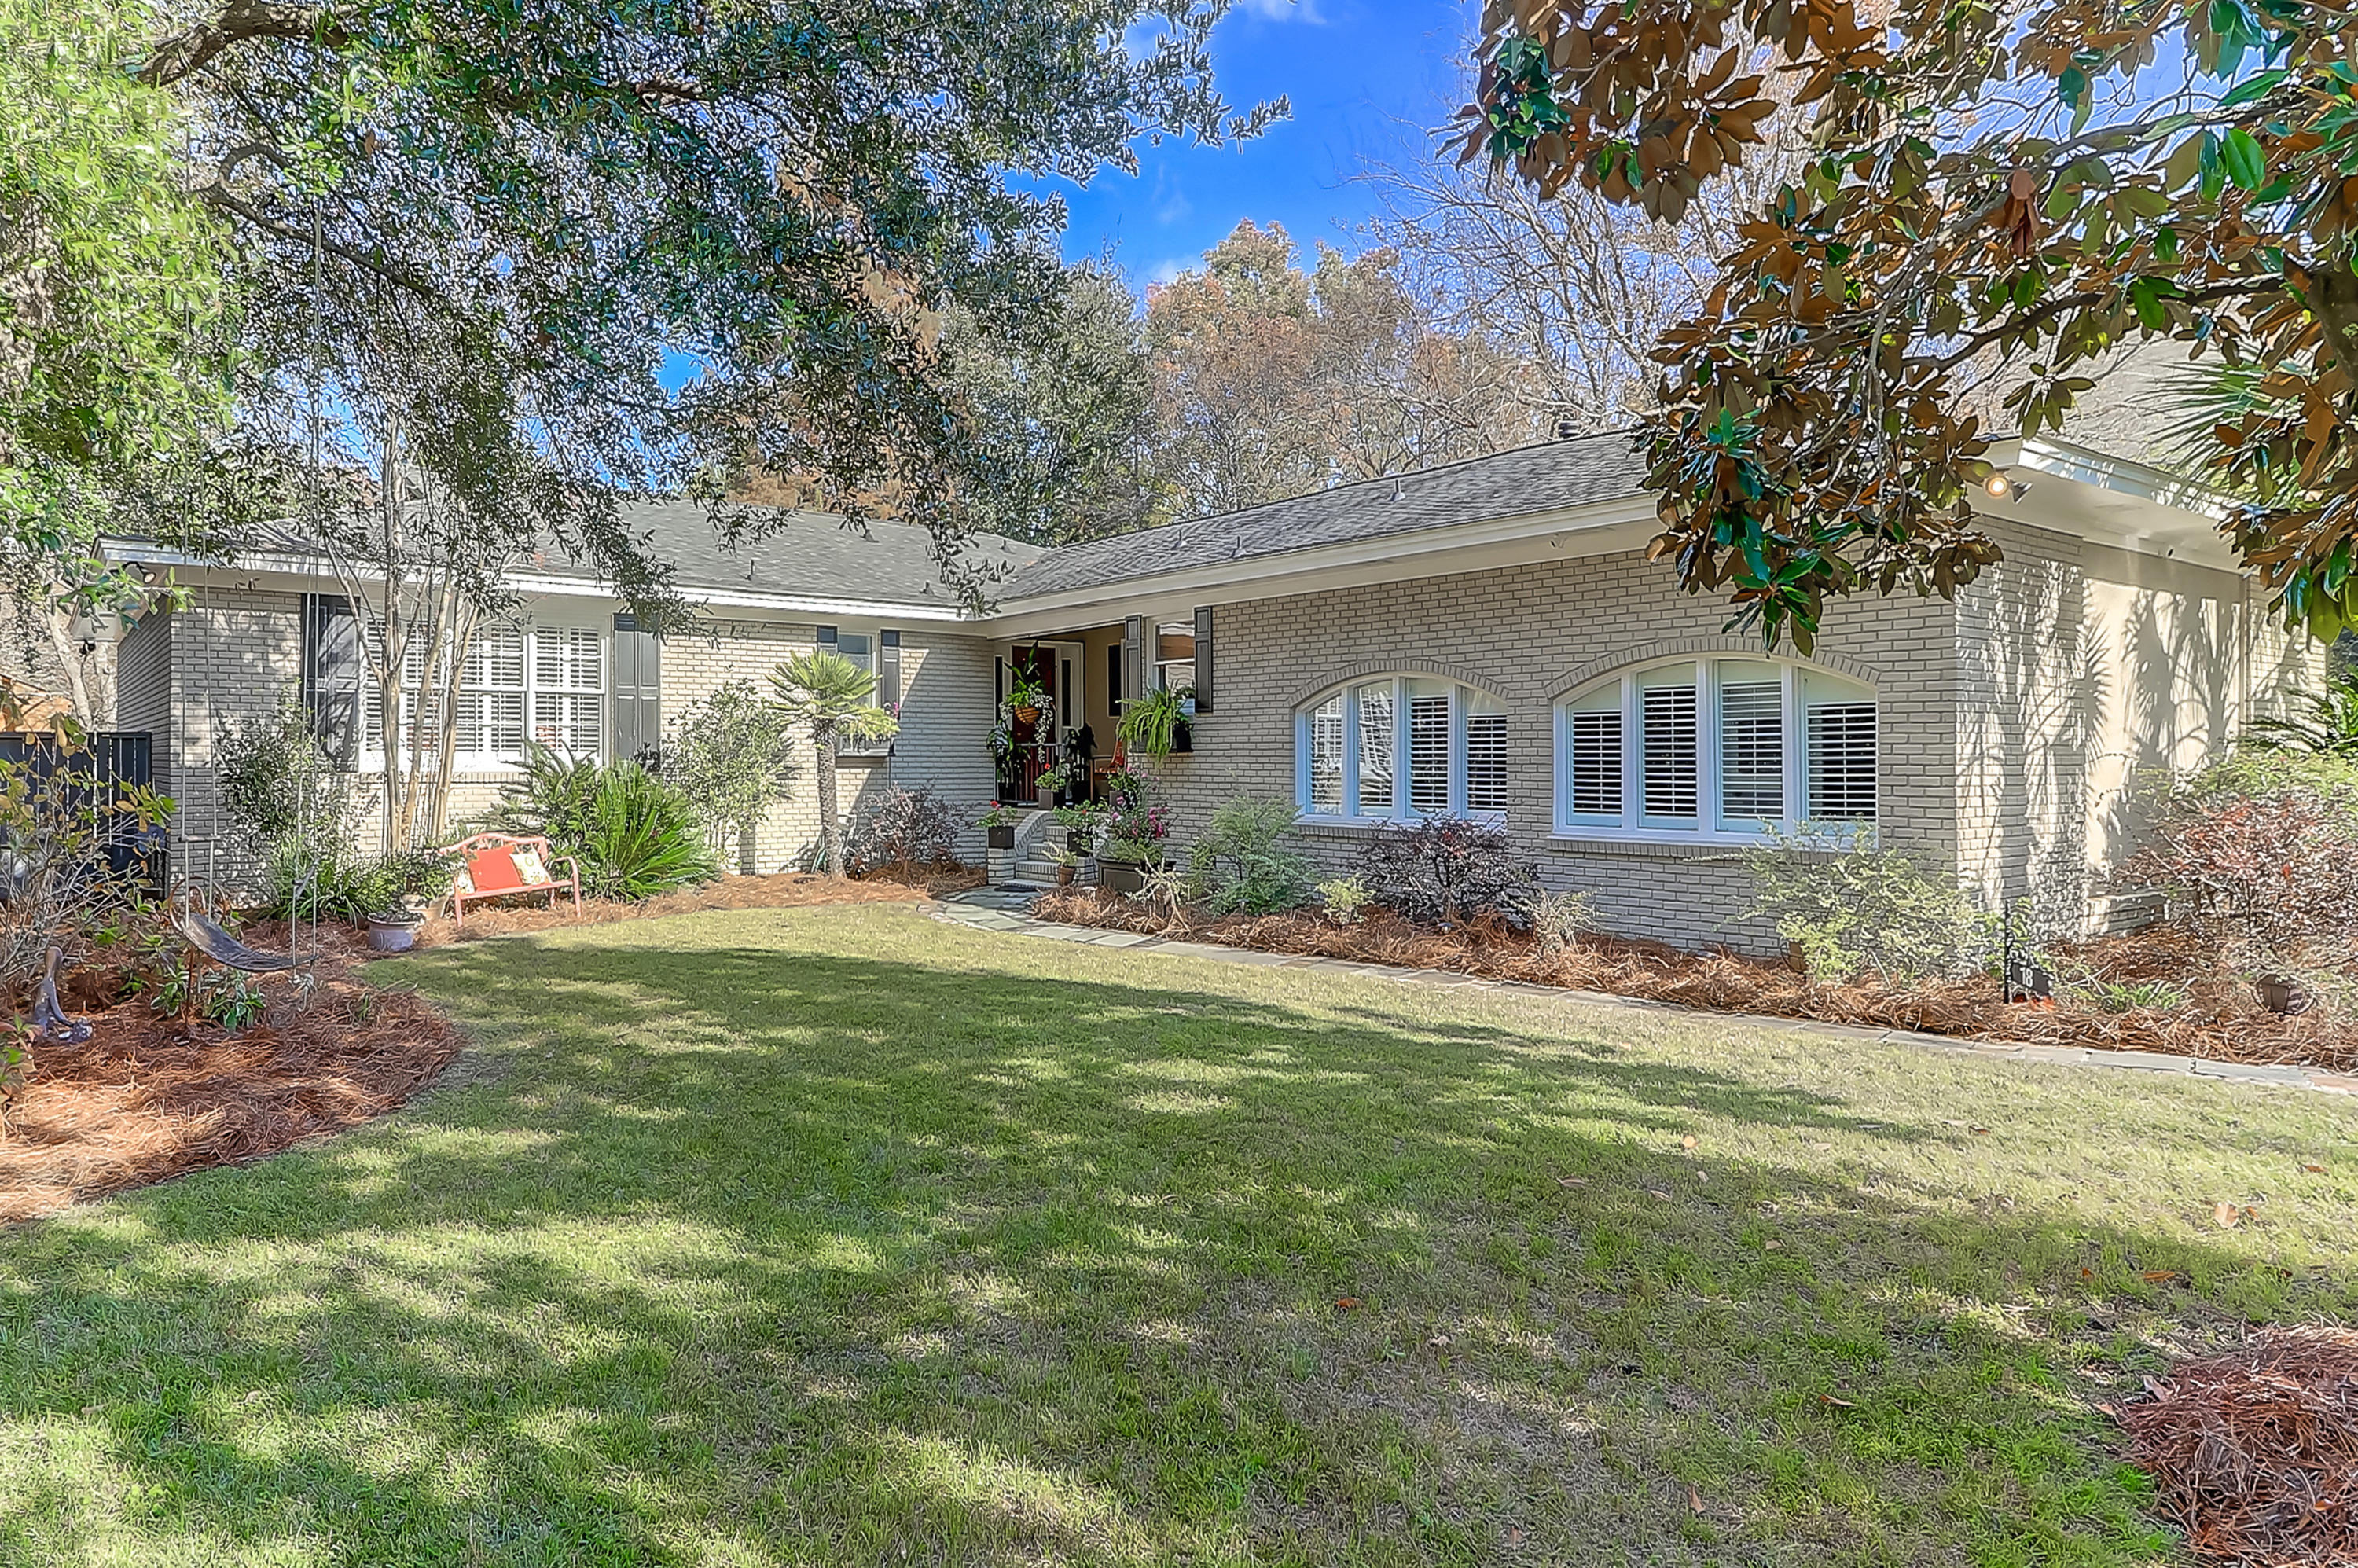 Home for sale 18 Rebellion Road, South Windermere, West Ashley, SC